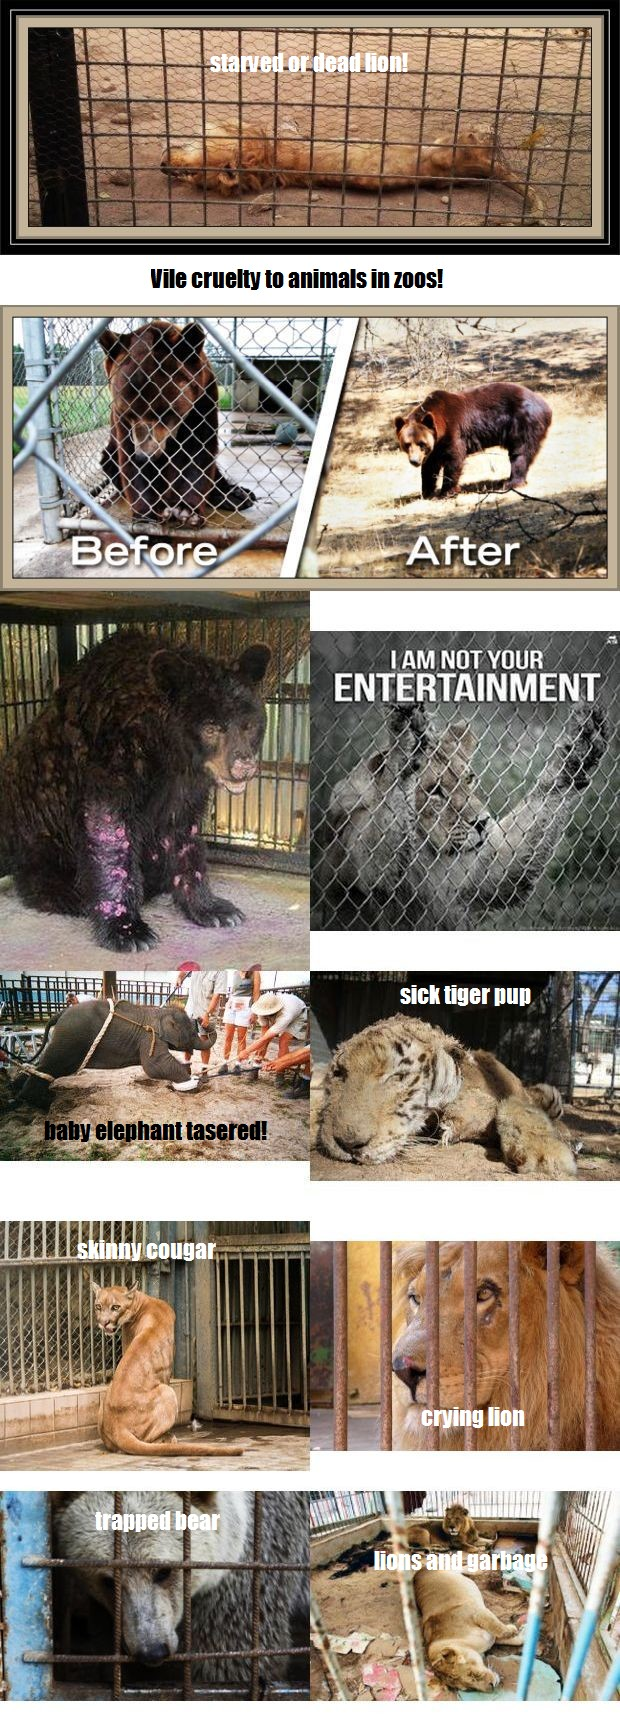 composite vile cruelty to animals in zoos